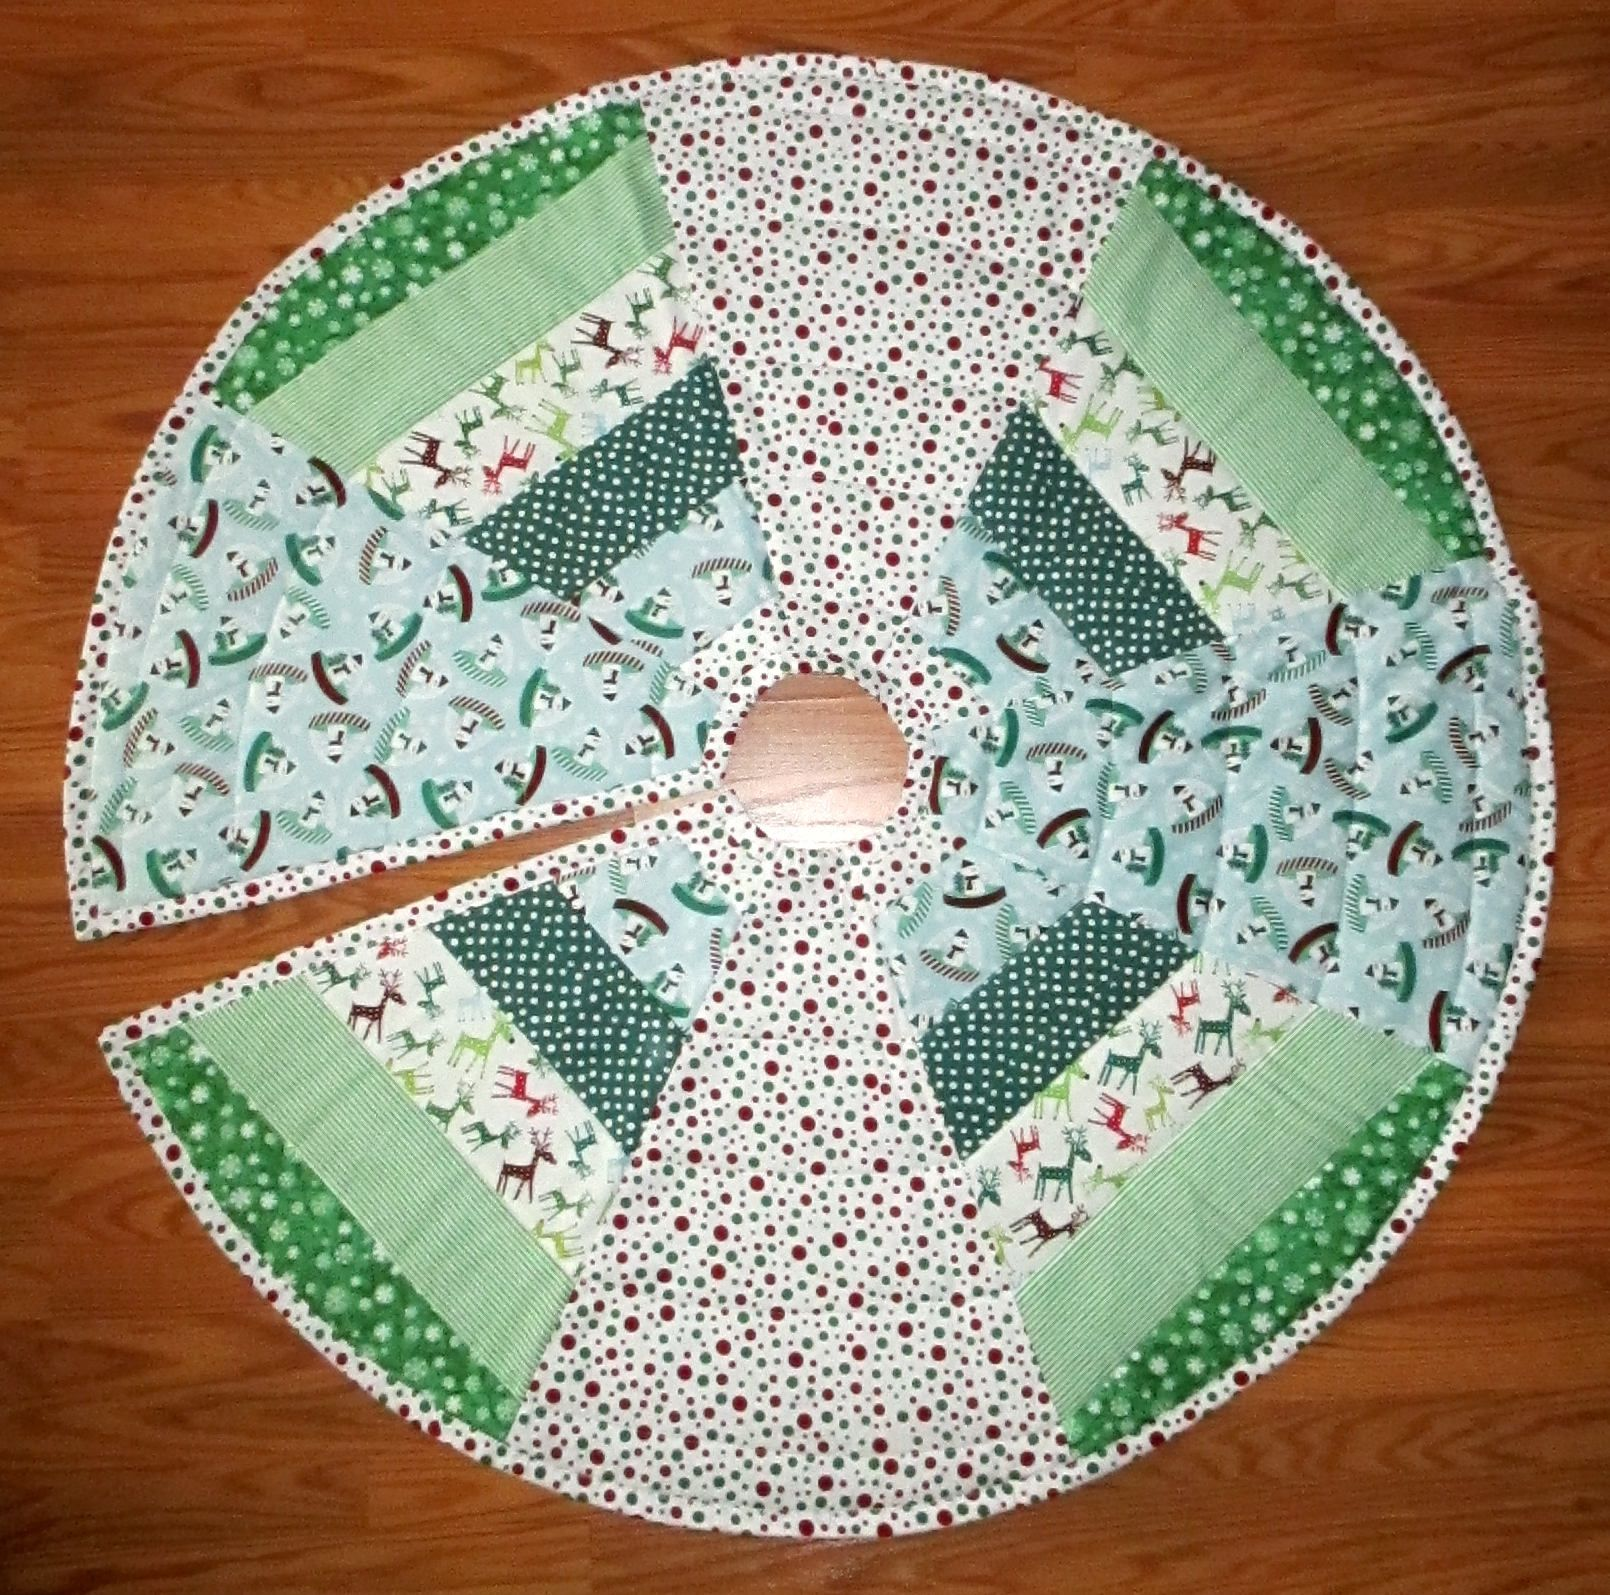 "Aqua Christmas Tree Skirt: Quilted Christmas Tree Skirt 44"" Circle Snowman Snow Globe"